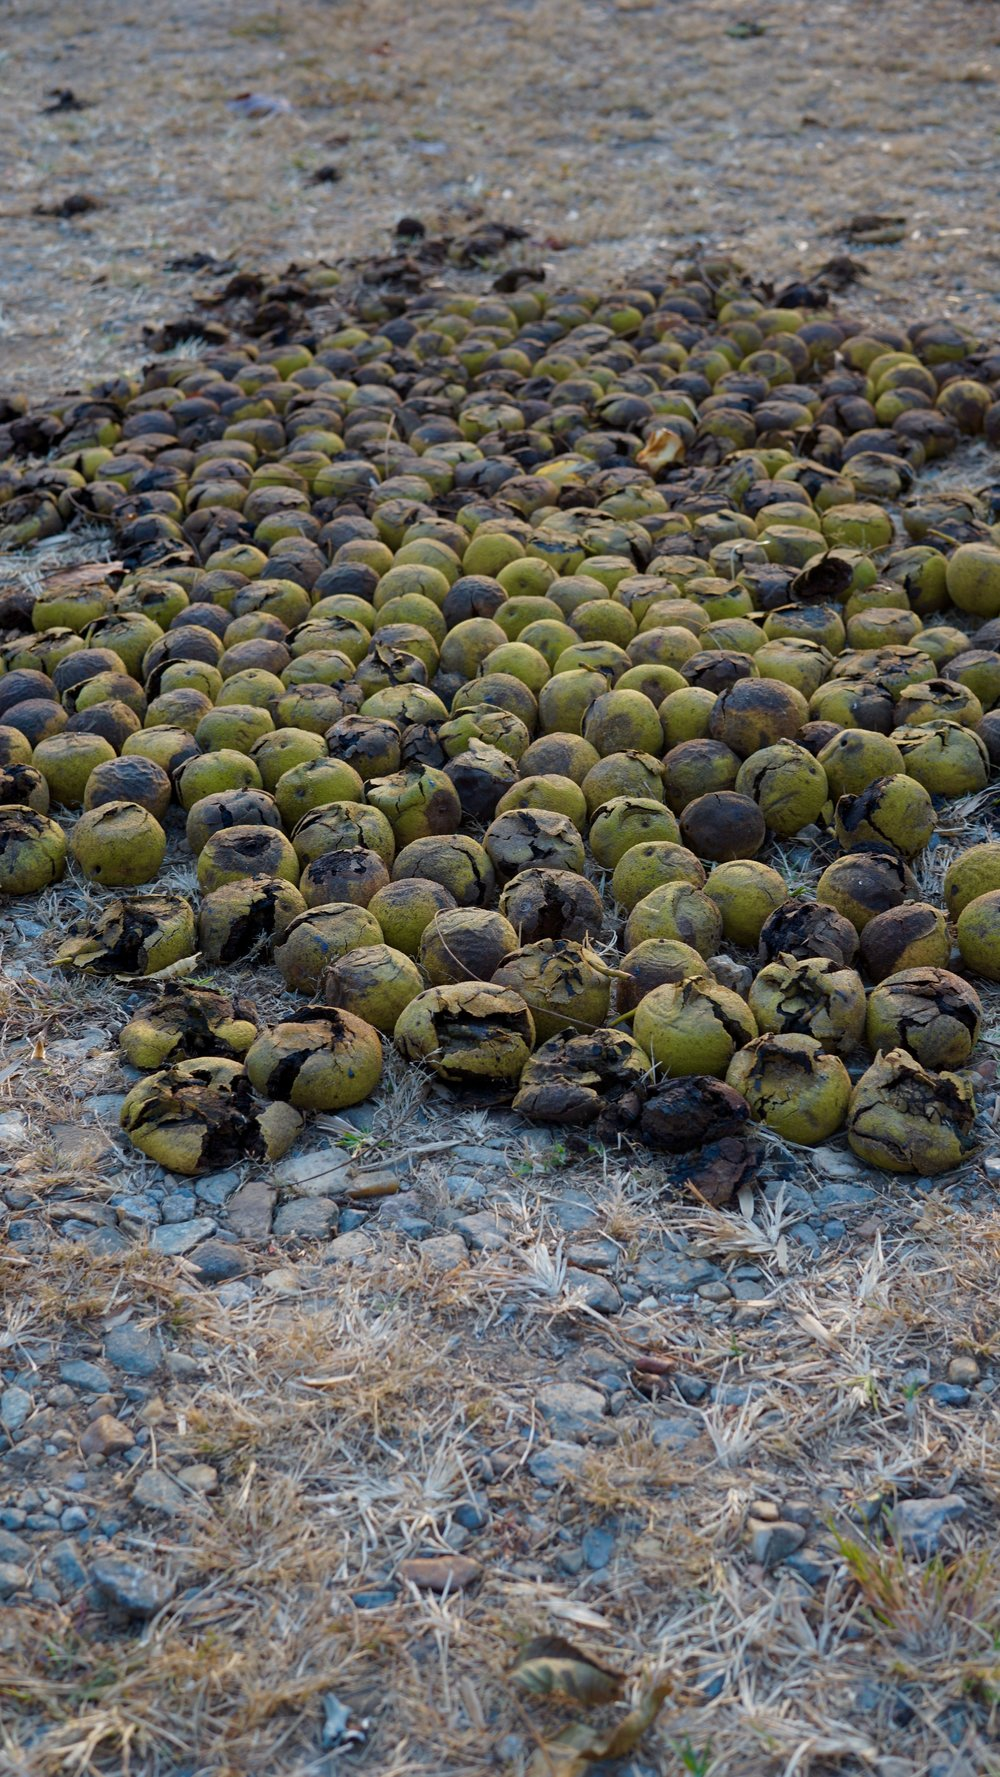 Walnuts on the driveway, waiting to be cracked open by the weight of a car.